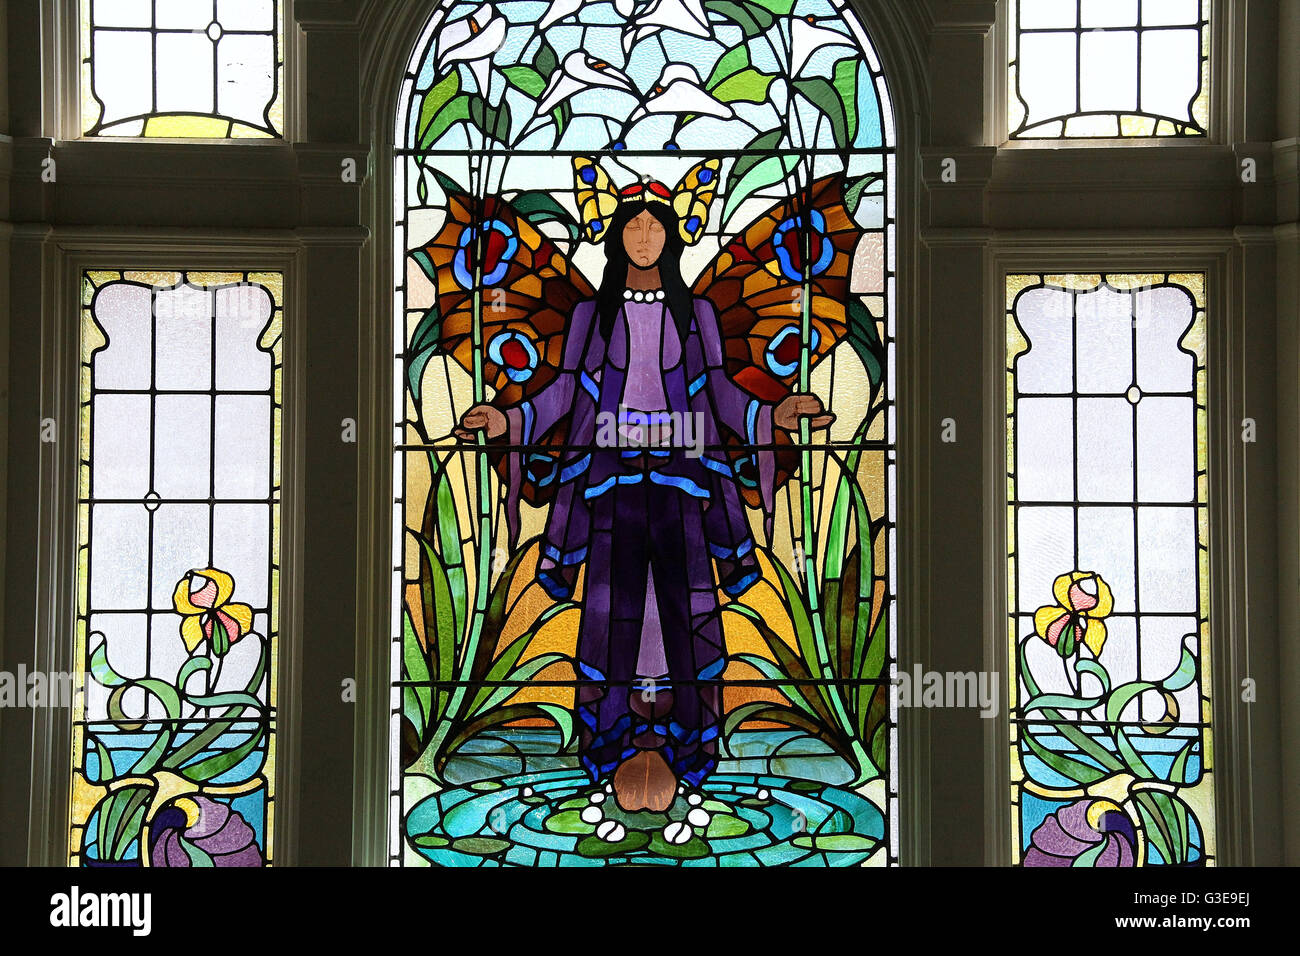 Angel of Purity Stained Glass Window at Victoria Baths in Manchester - Stock Image